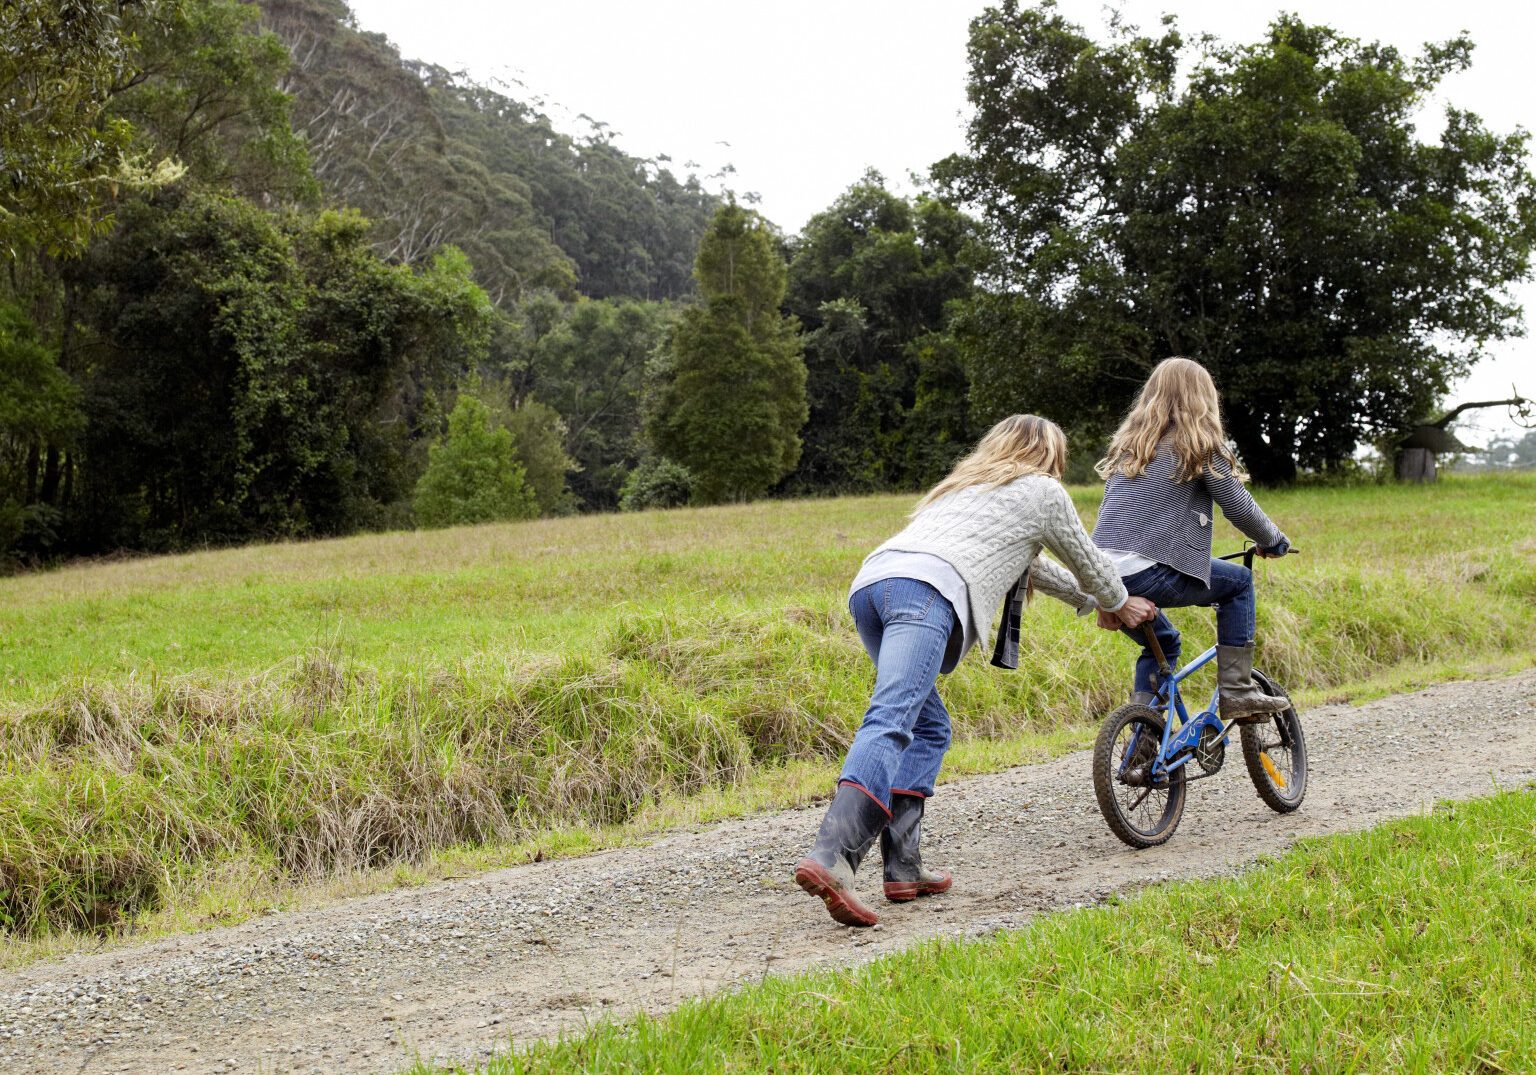 Mother pushing daughter up hill on her bicycle